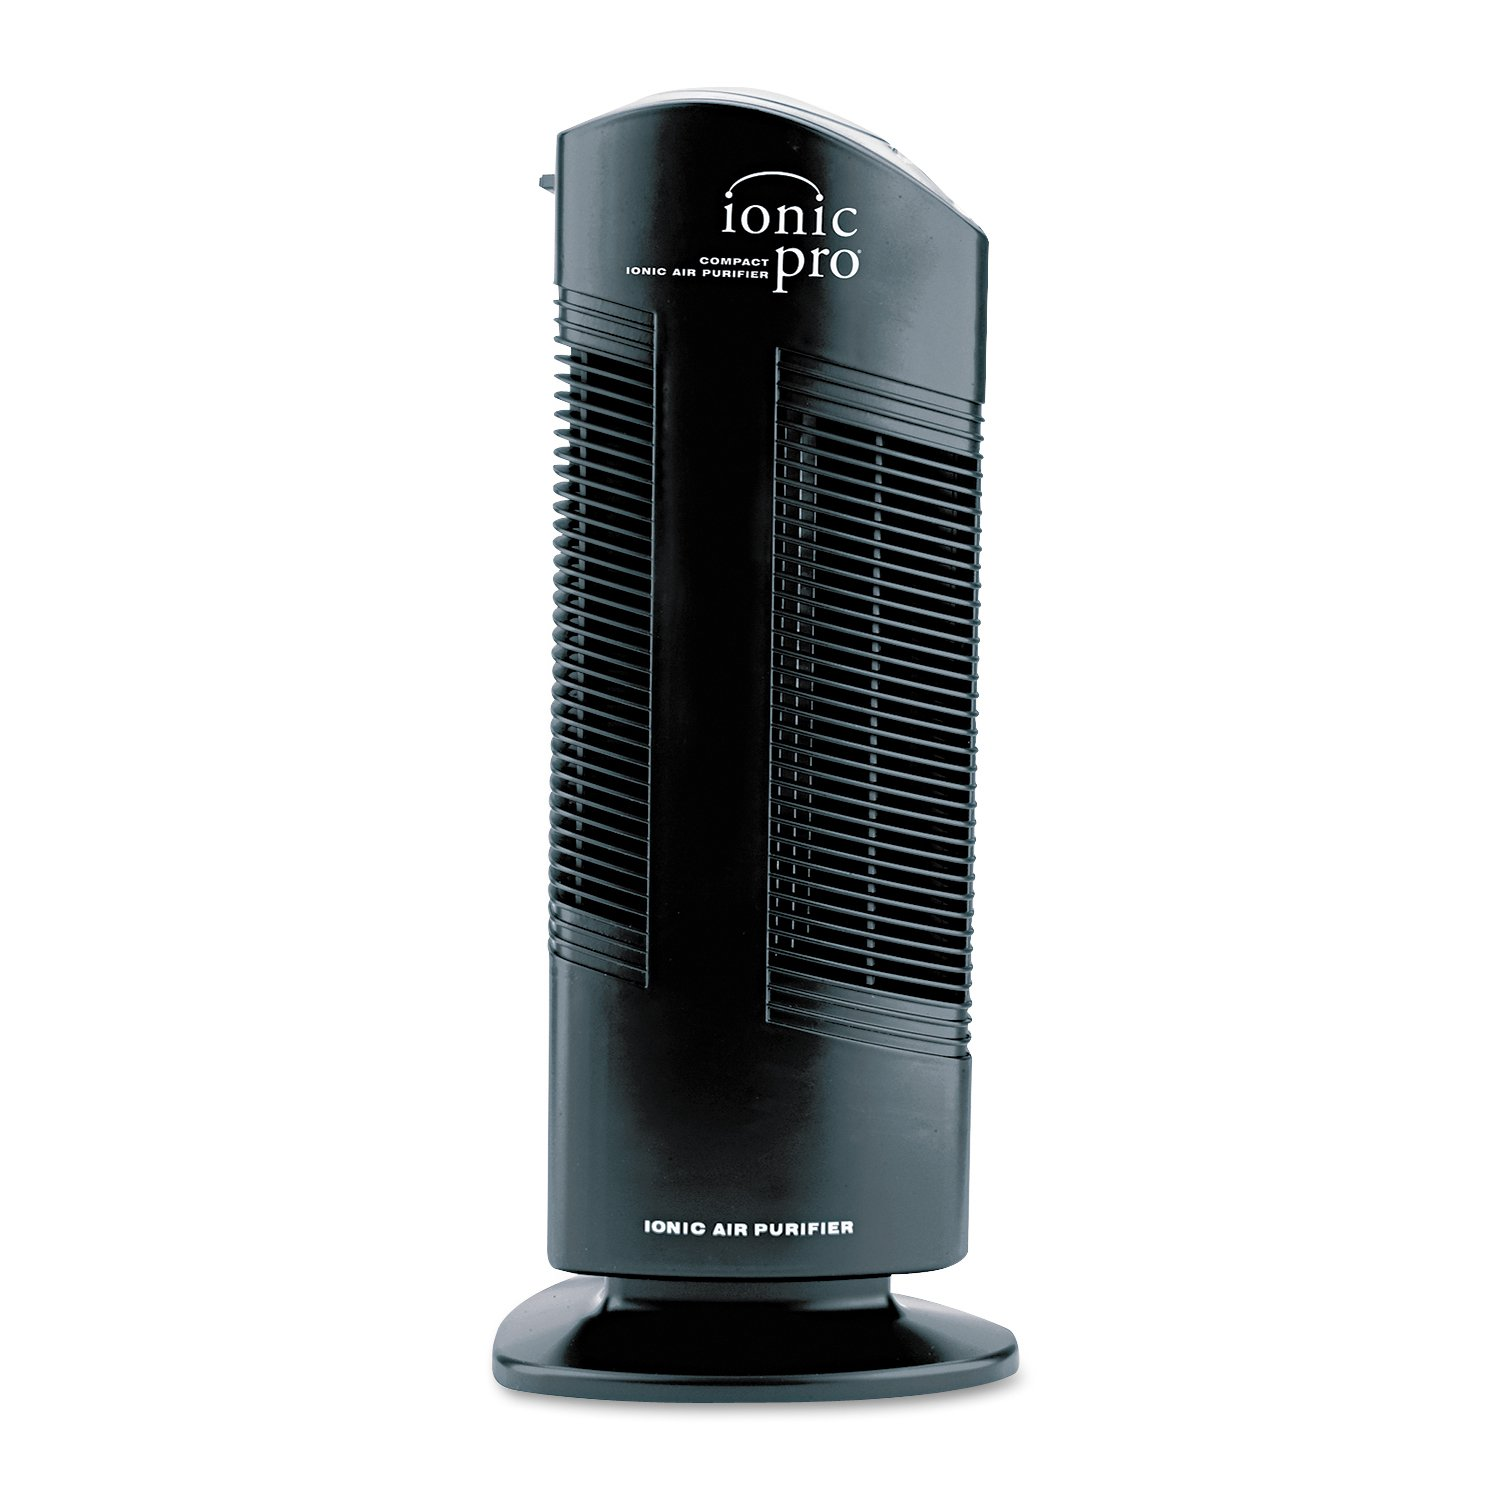 amazon co jp ionic pro イオン 空気清浄機 ionic air purifier 並行